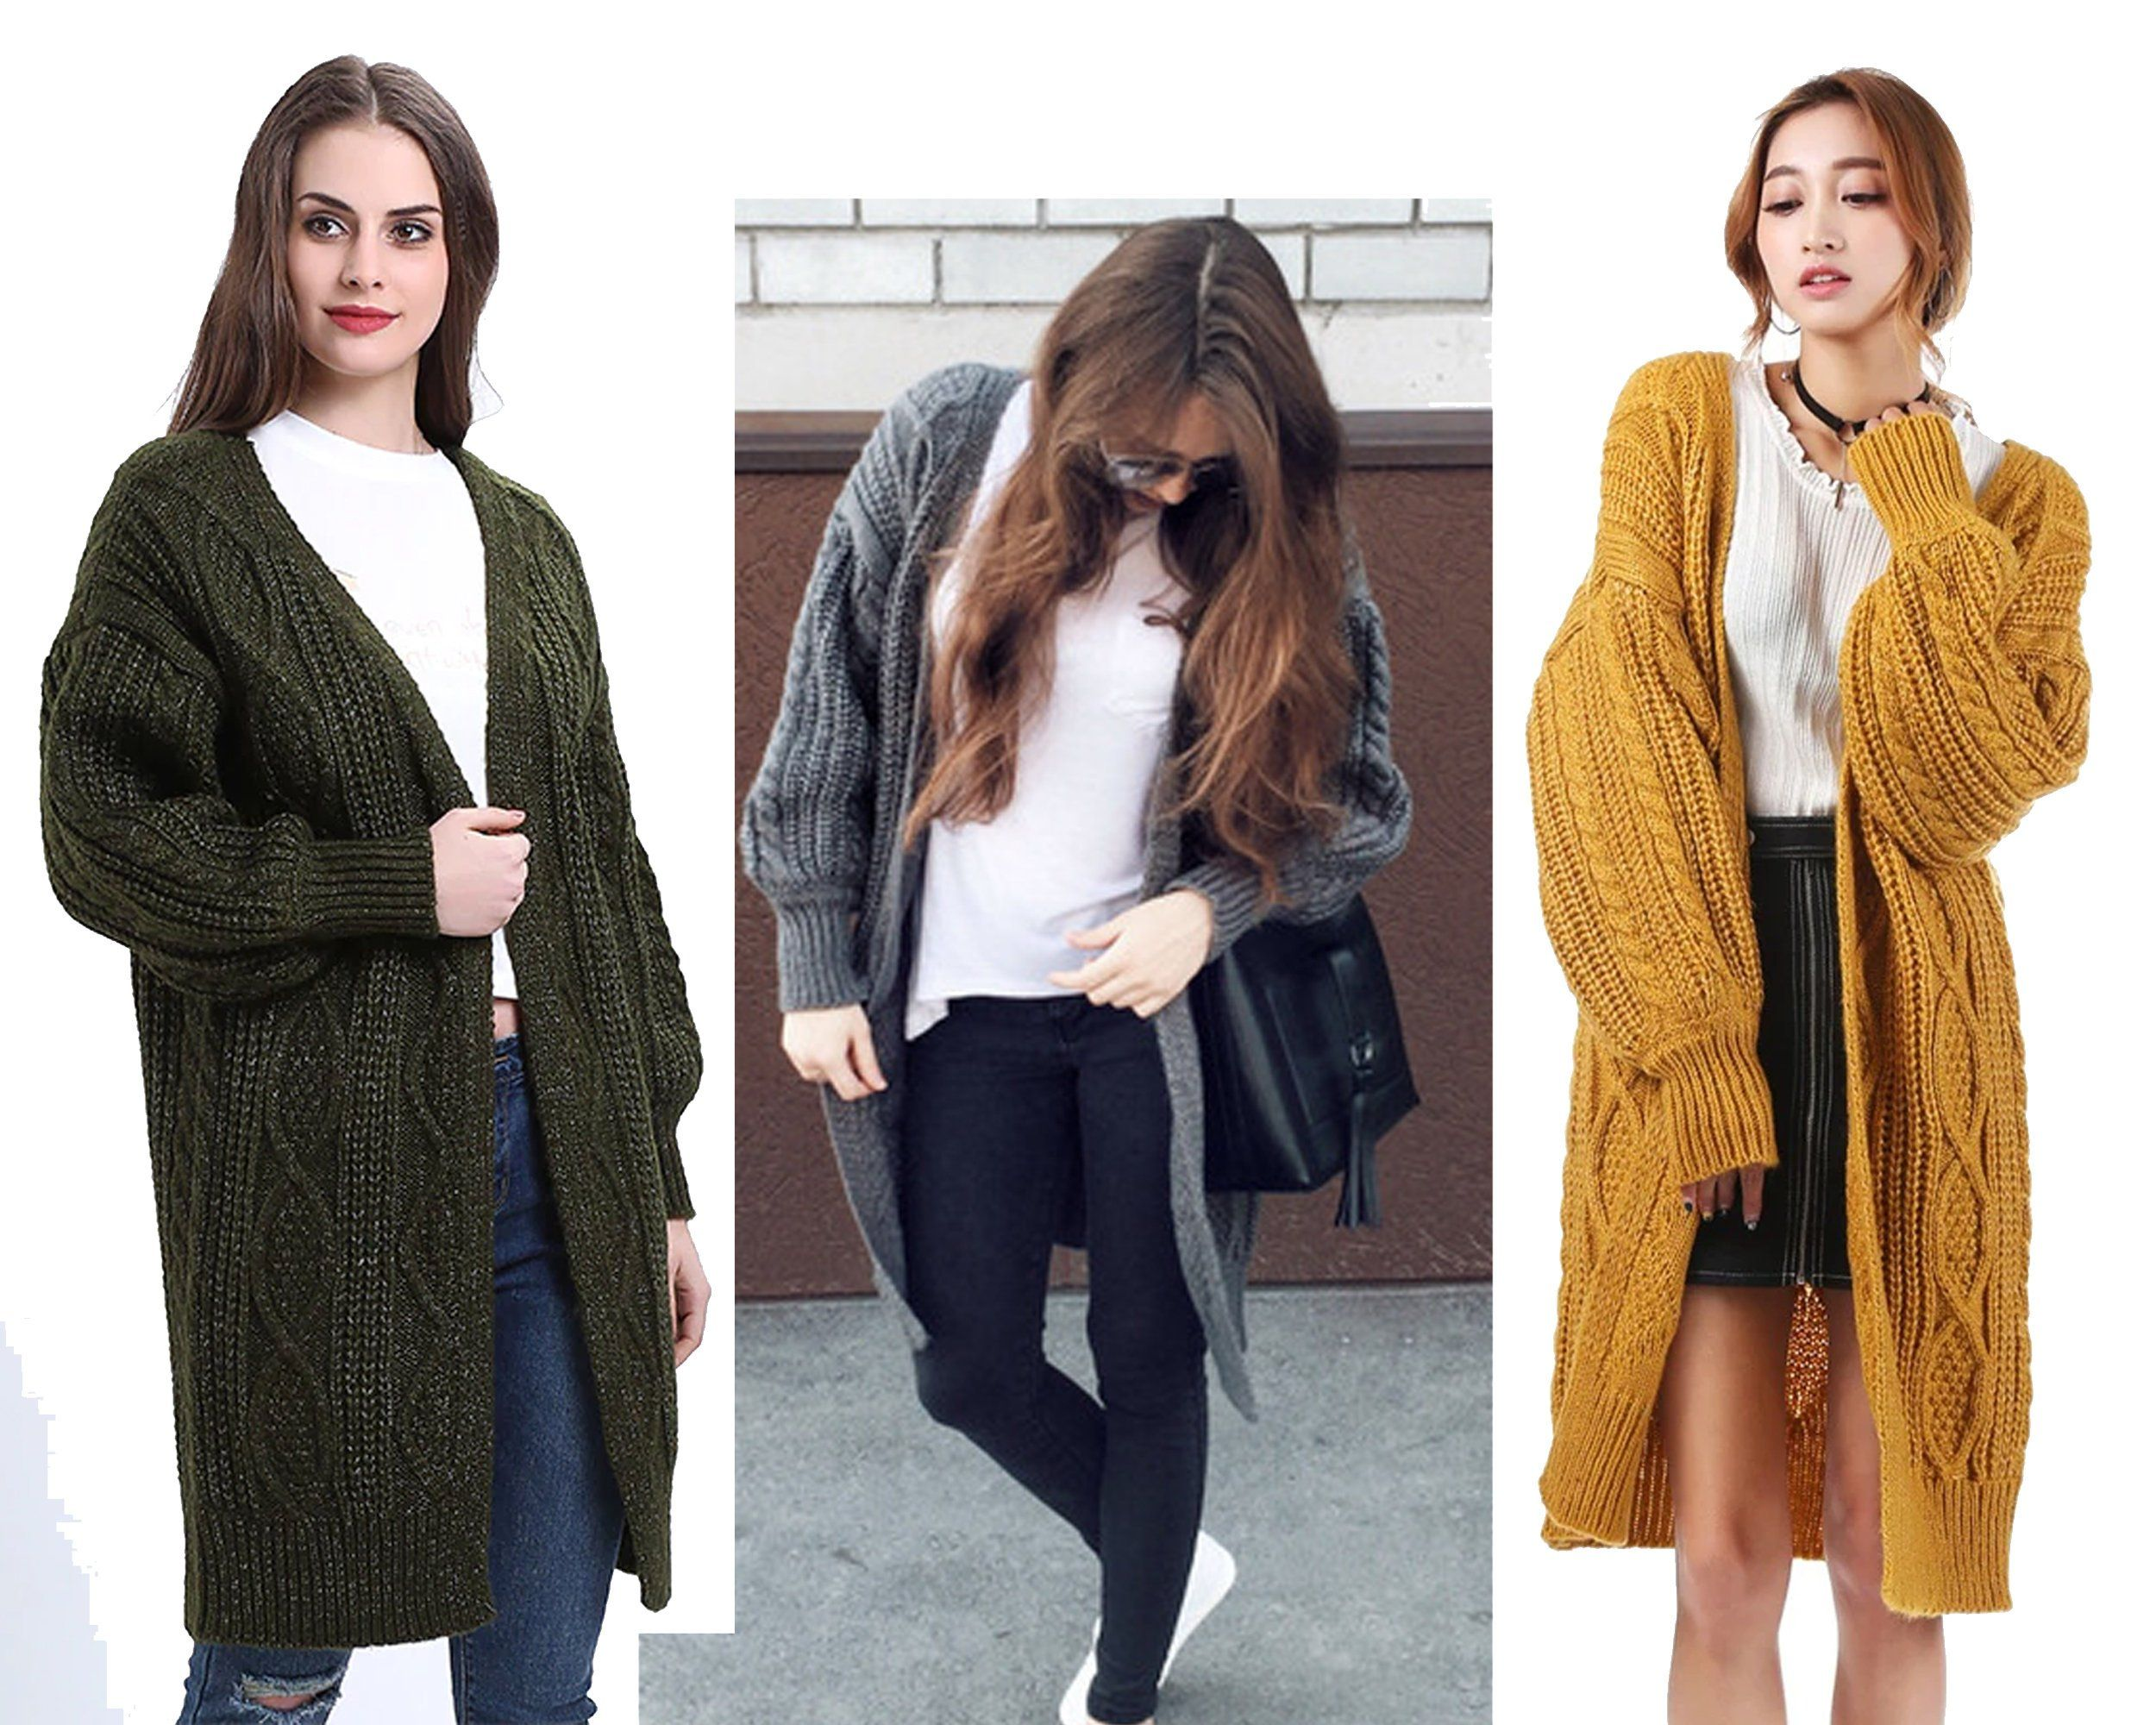 Women Oversized Batwing Sleeve Knitted Sweater Vintage Girls Sweater Tops  Loose Cardigan Outwear Coat  One bf88ff58f